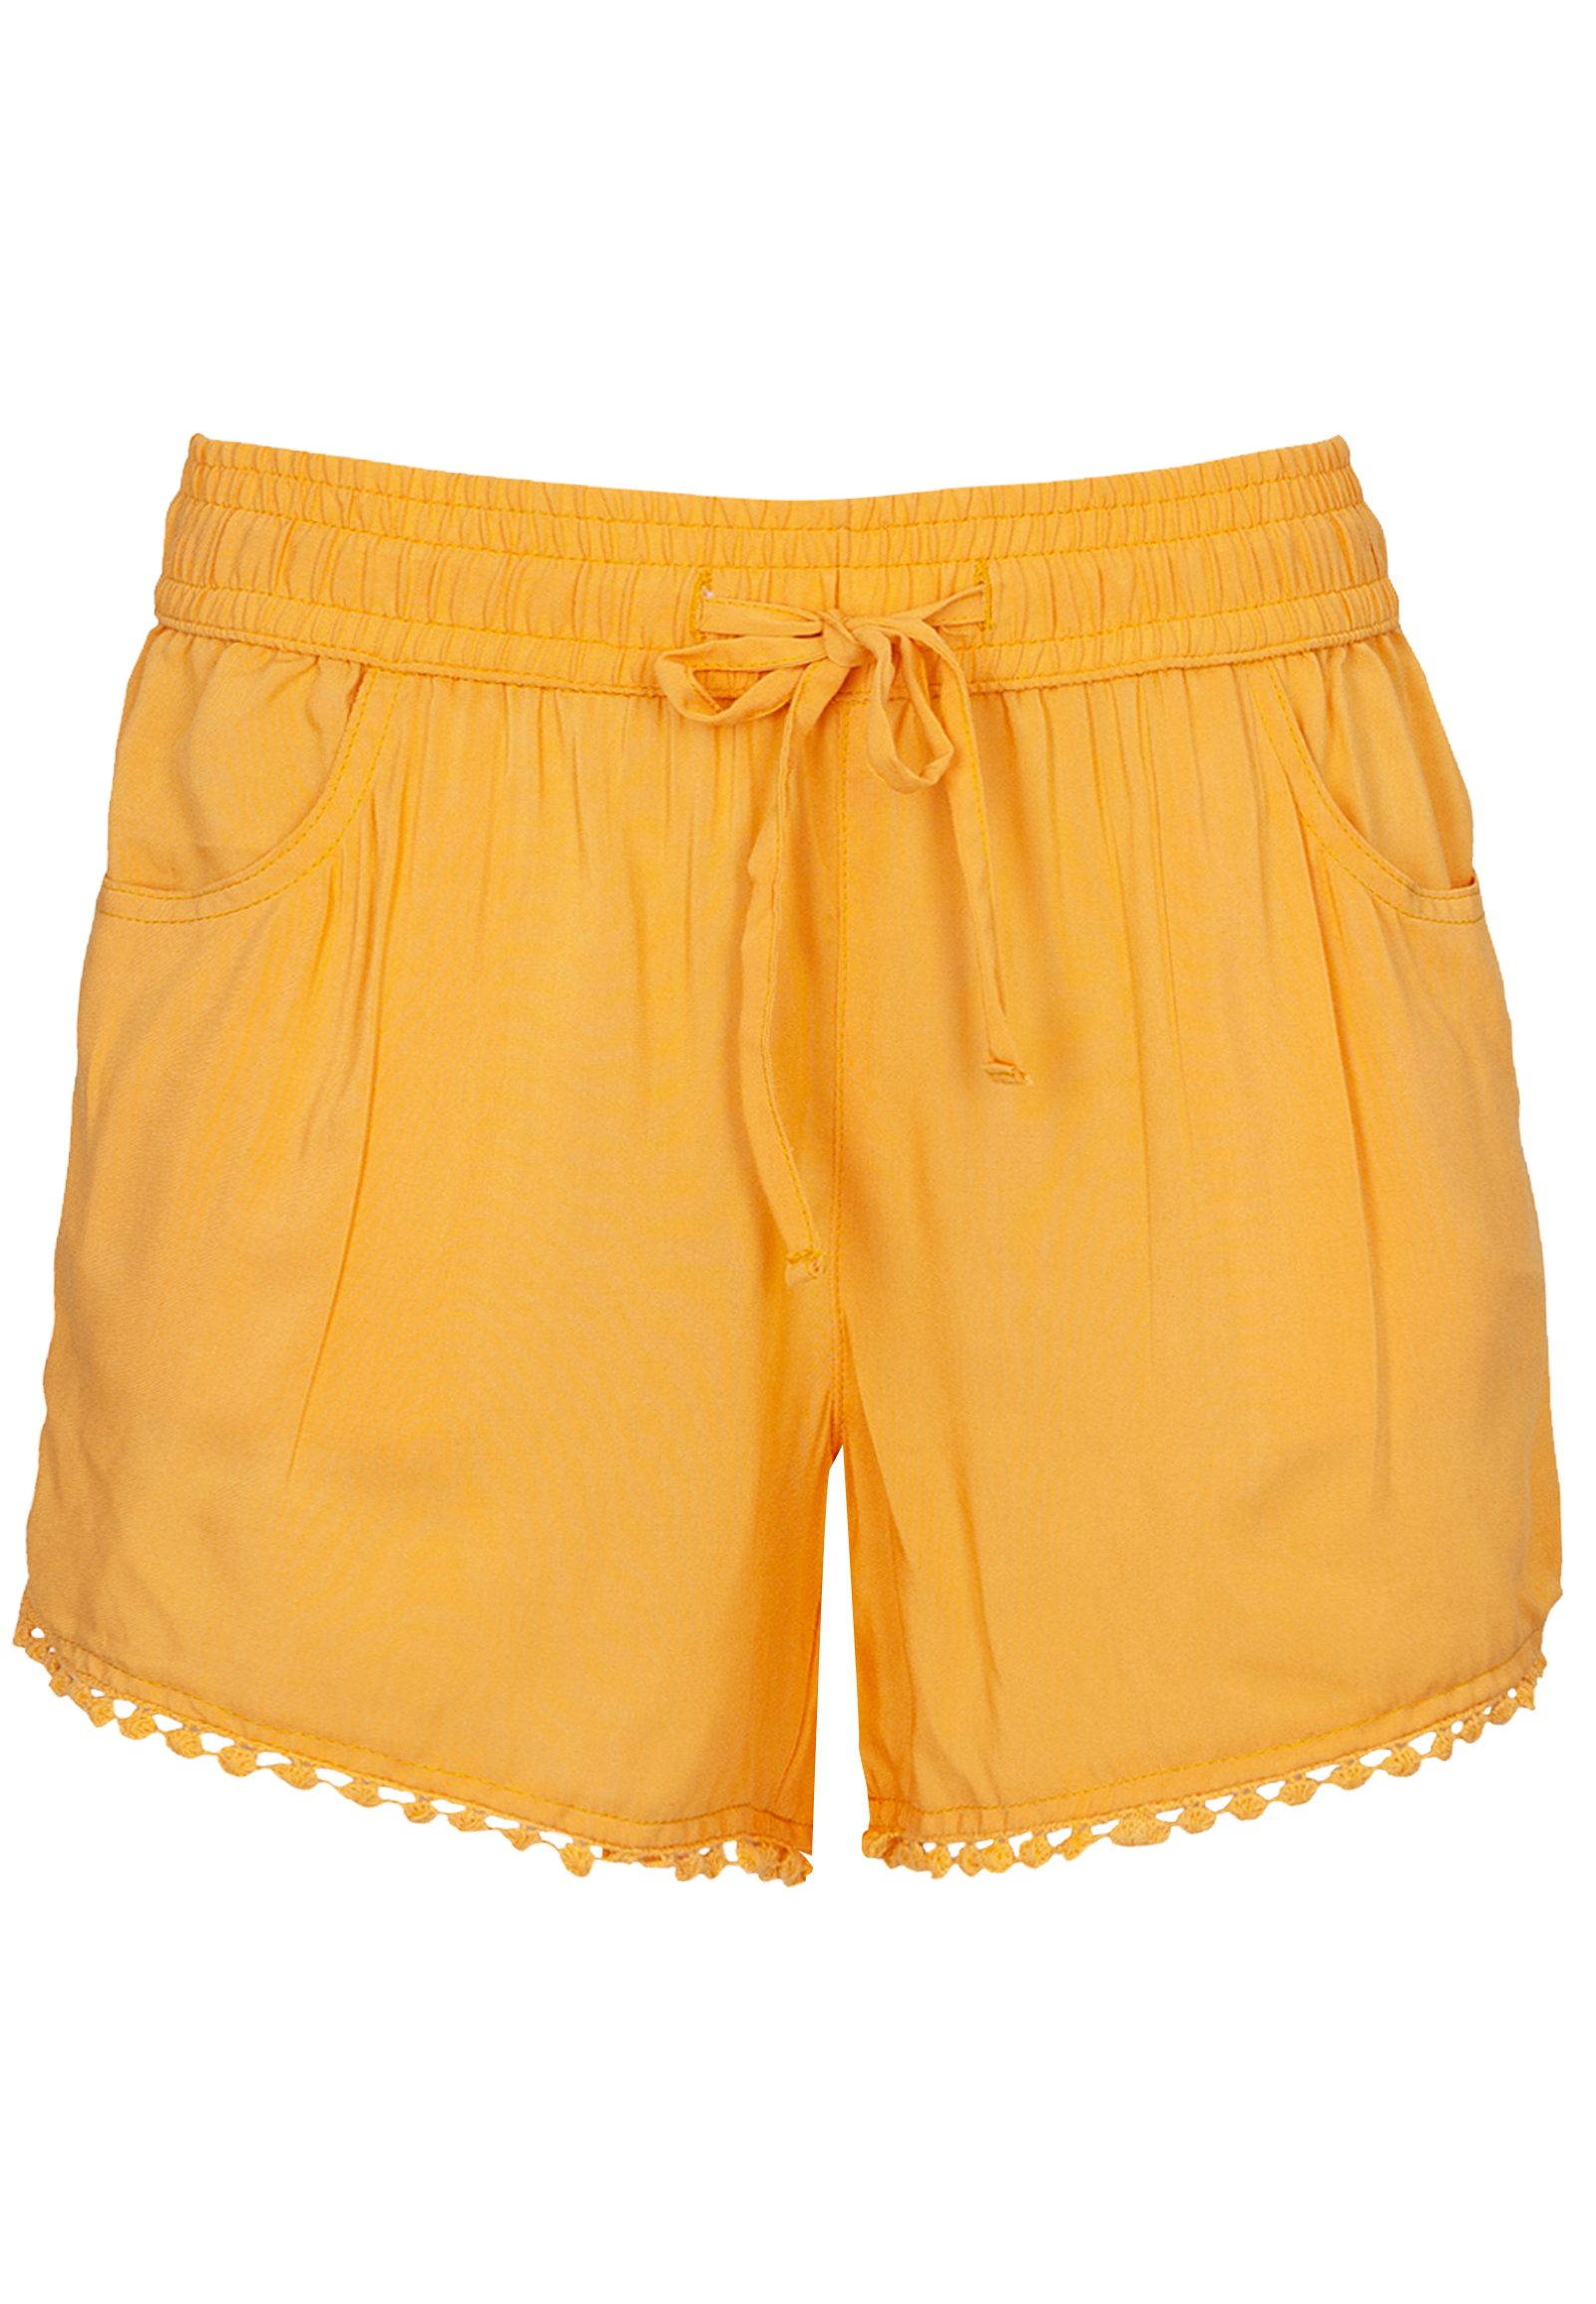 Hosen - Shorts mit Häkelborte › Fresh Made › gelb  - Onlineshop FASHION5